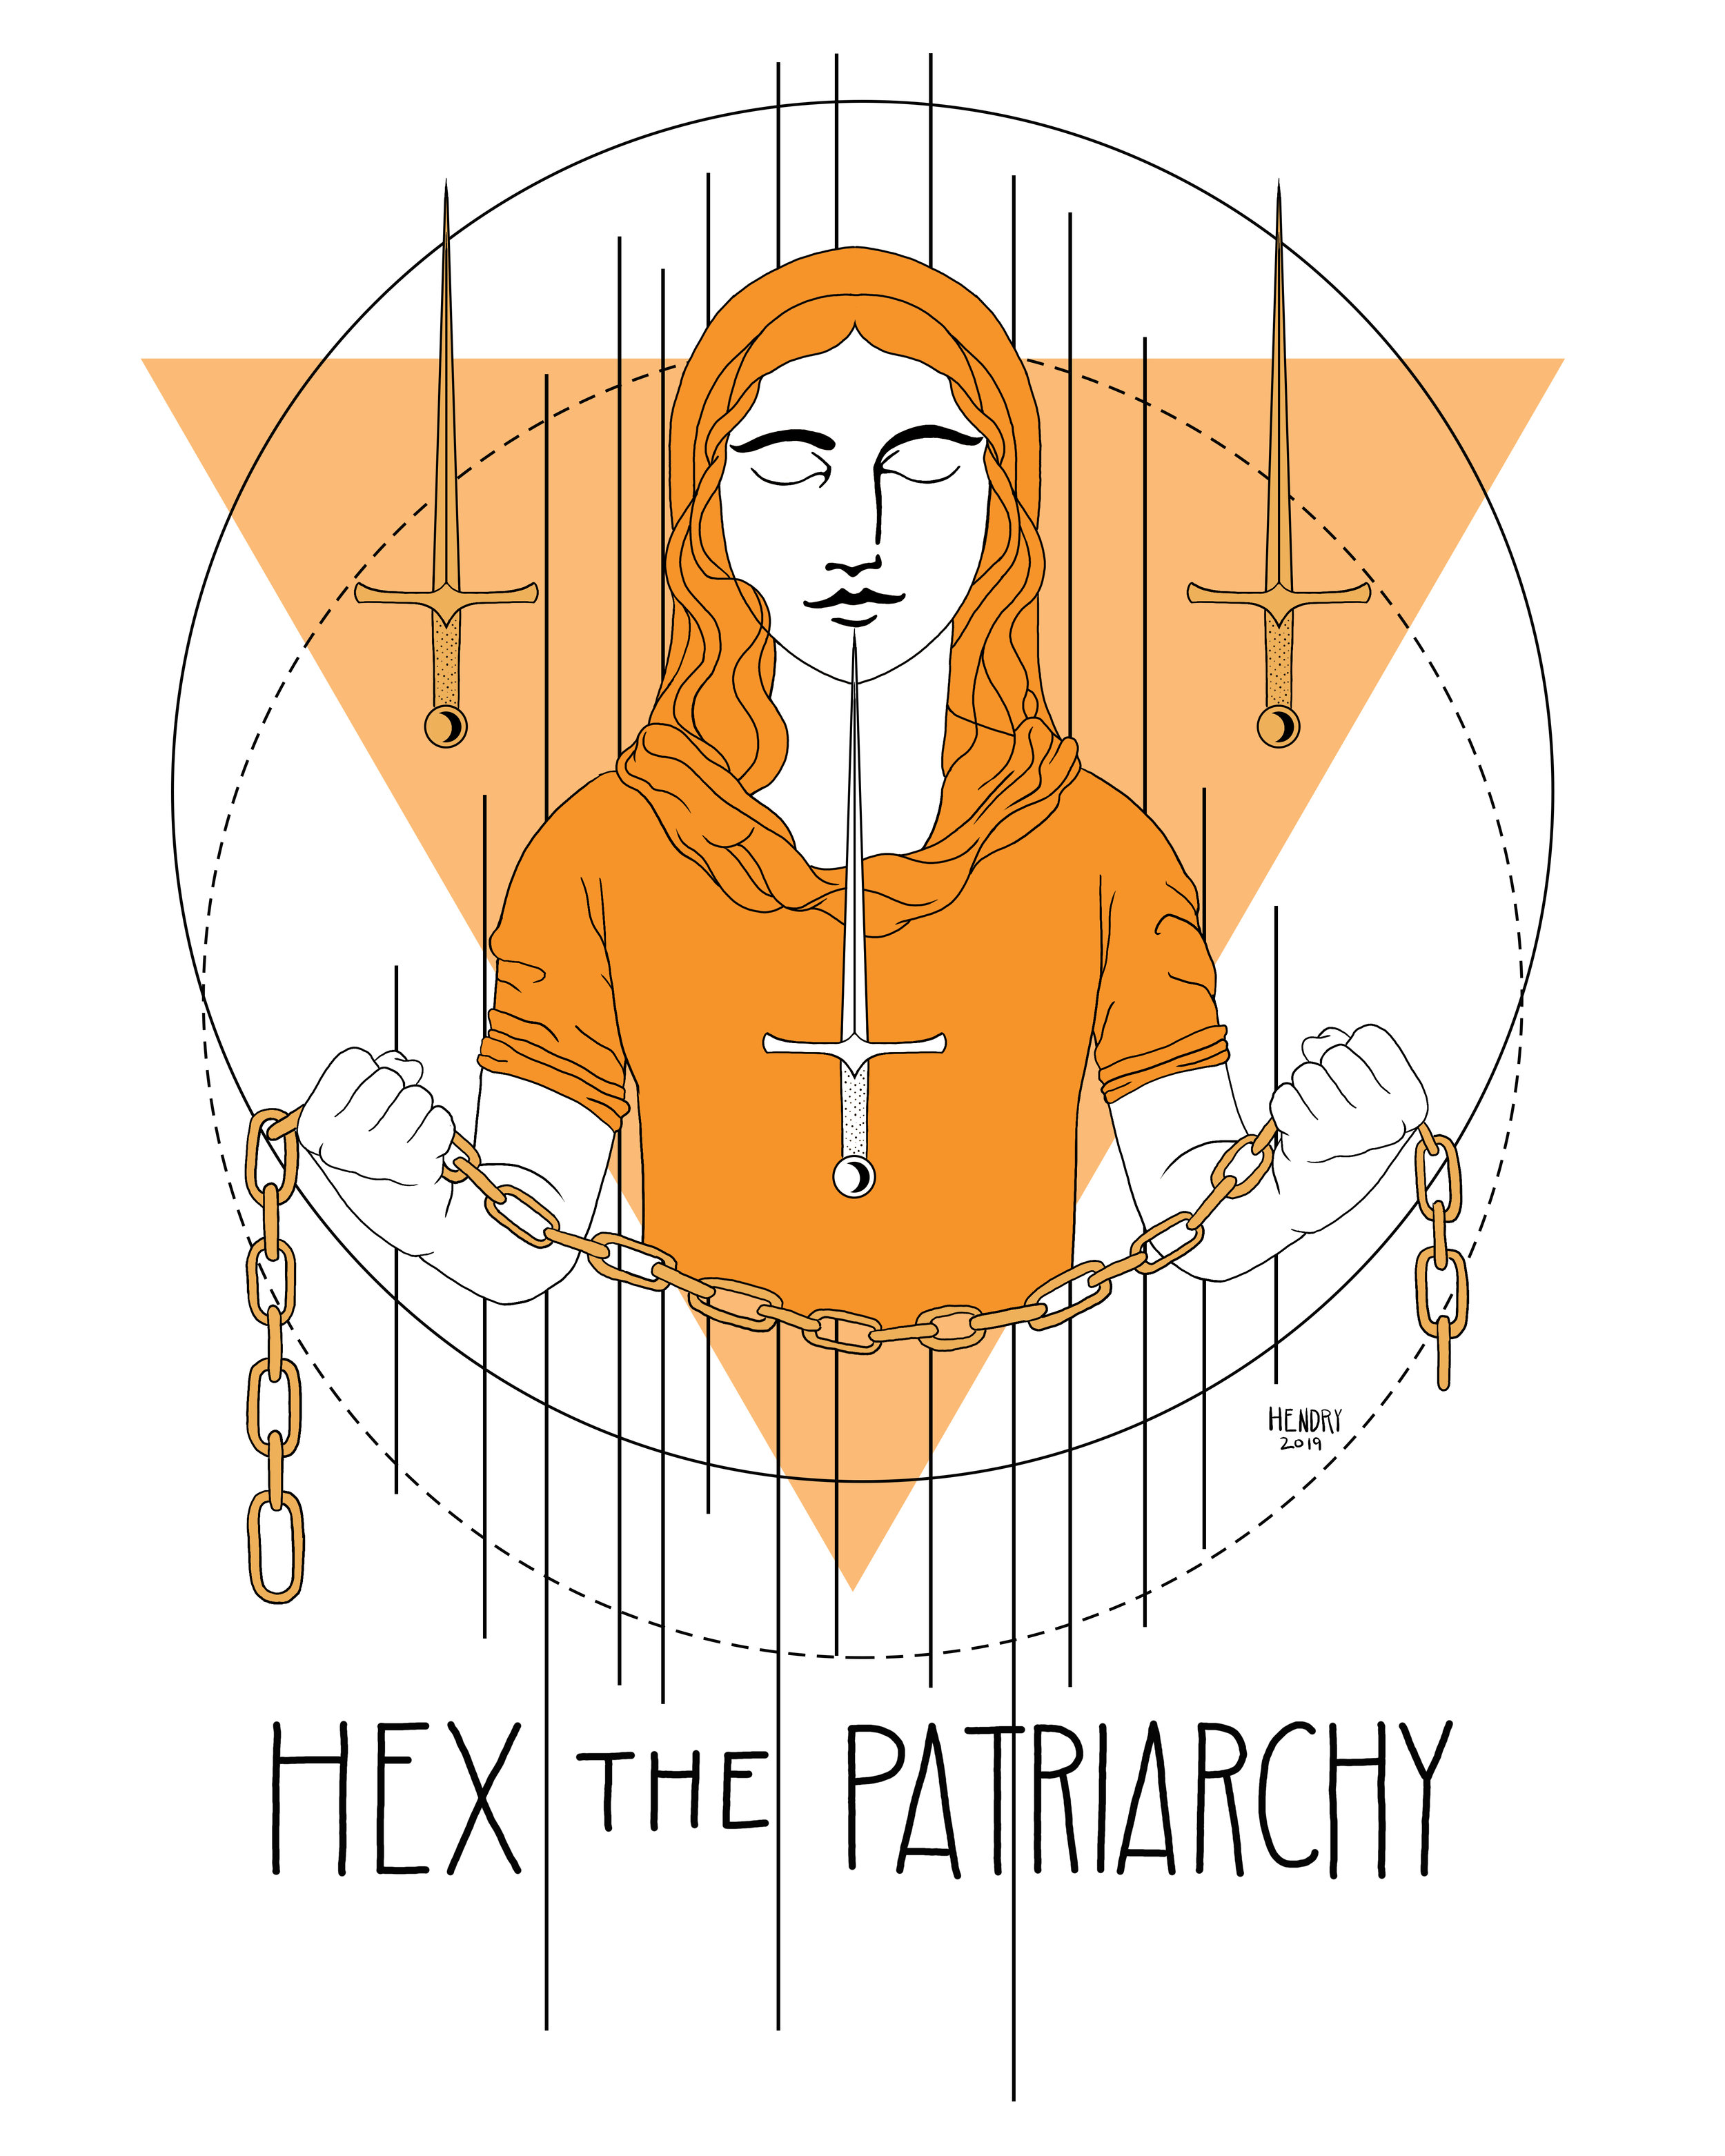 hexthepatriarchy orange.jpg